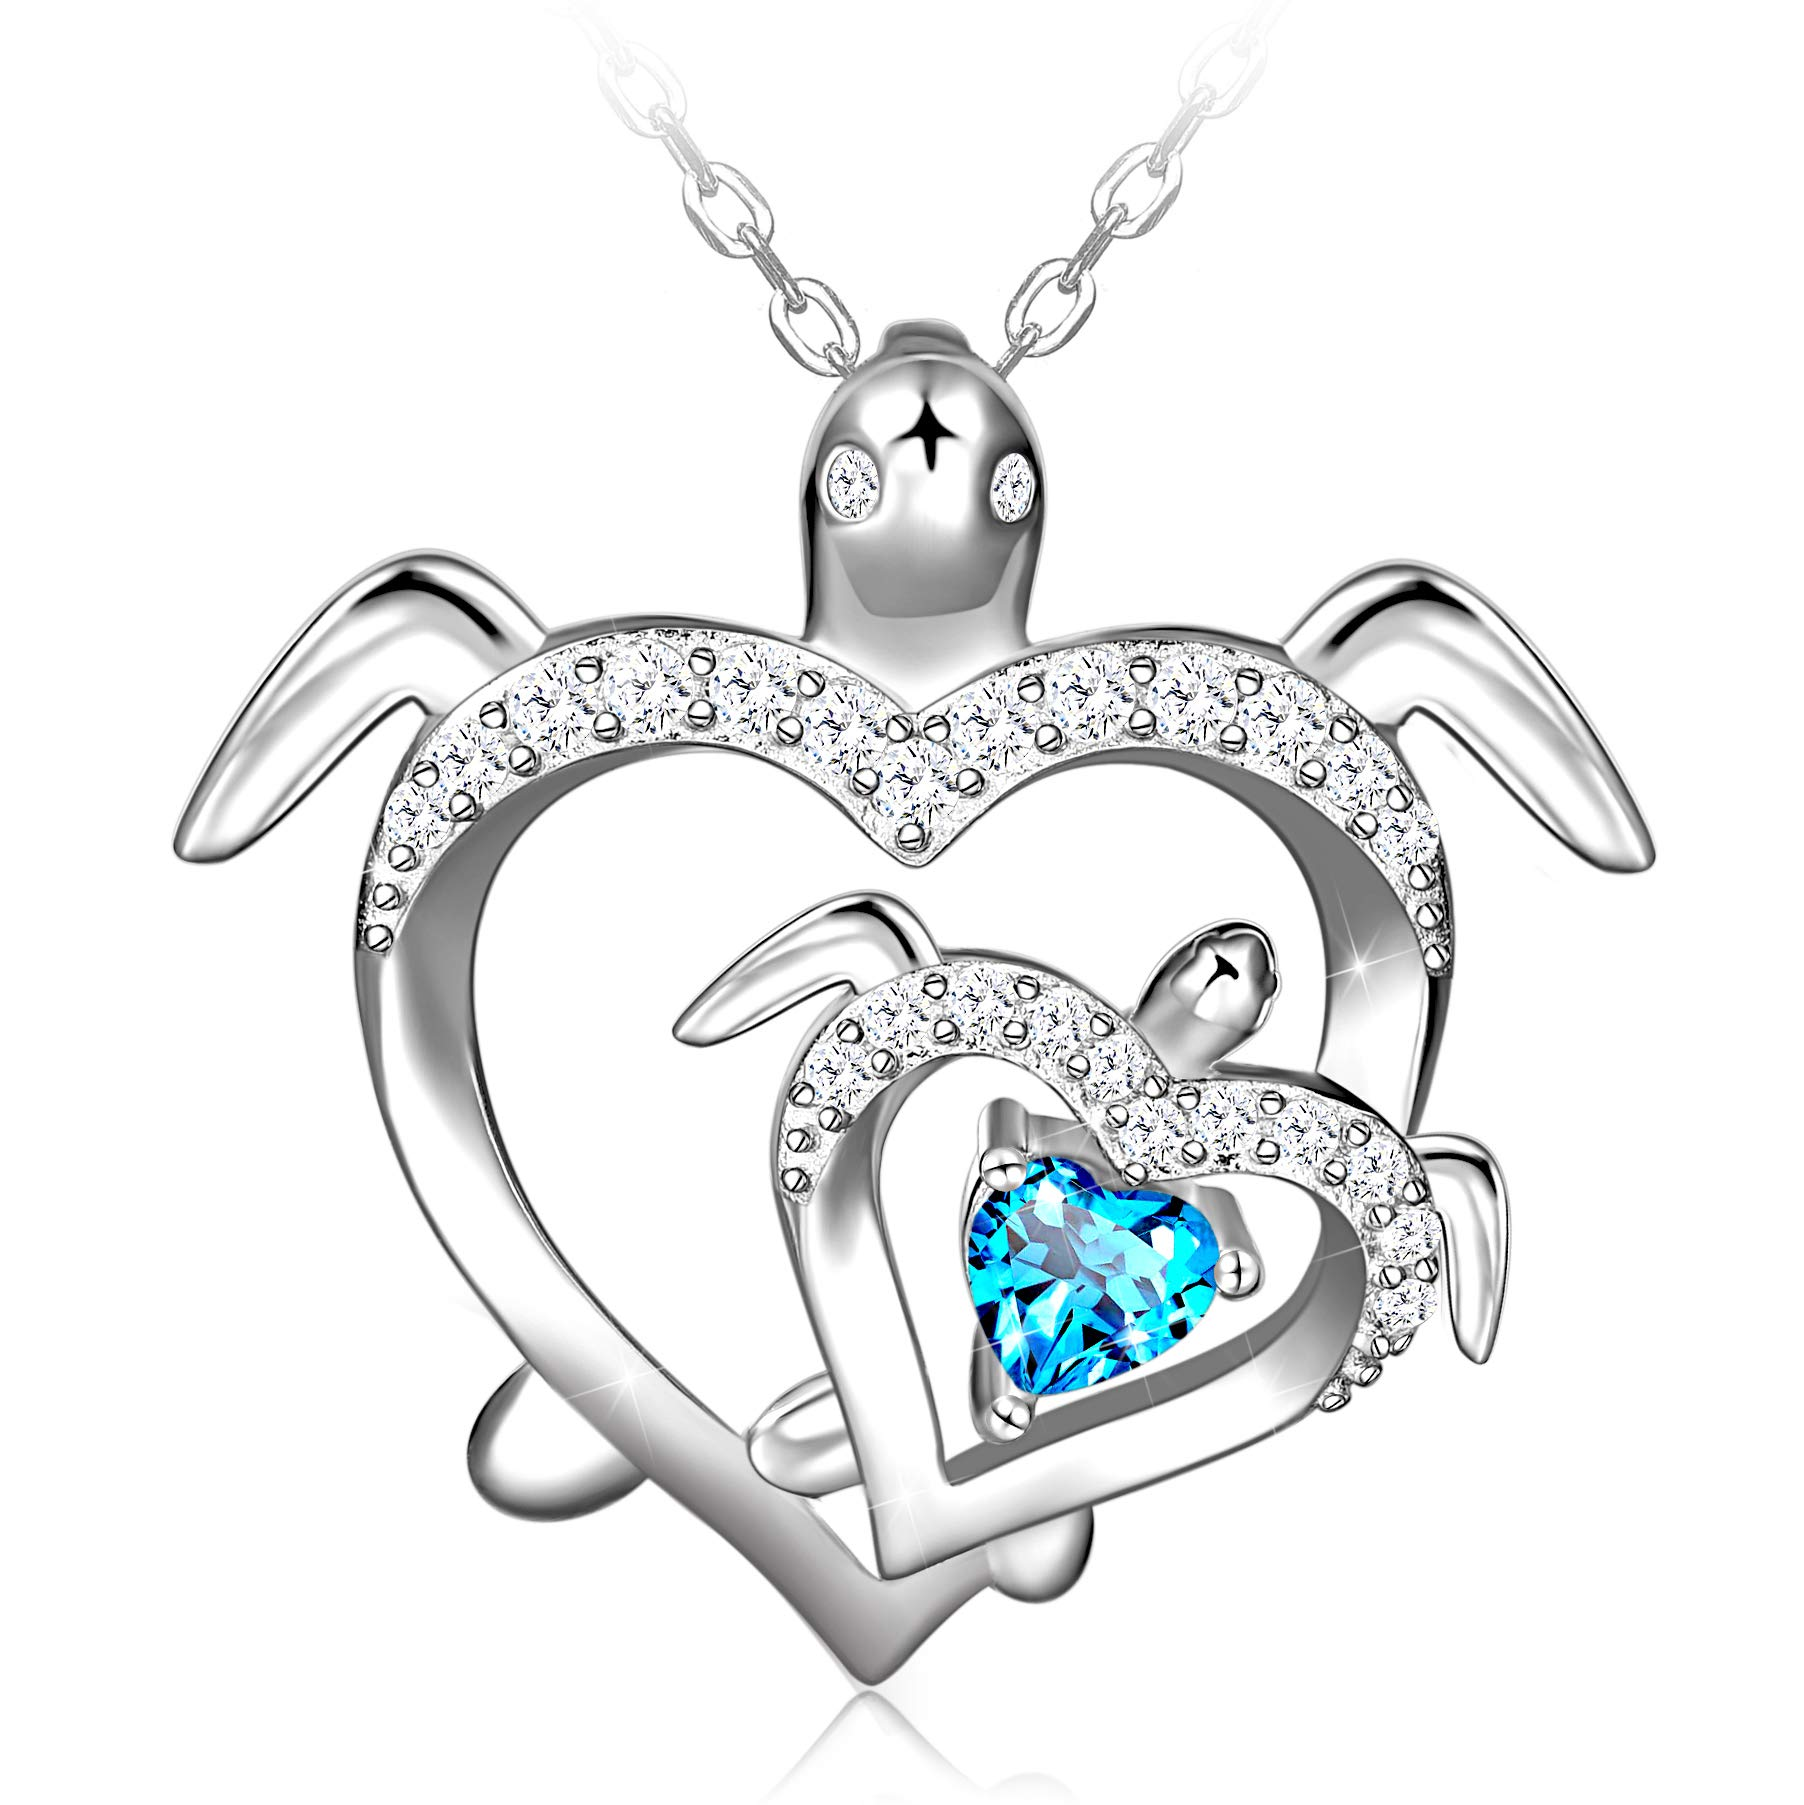 Distance Health and Longevity Mom and Baby Sea Turtle Pendant Necklace for Women 925 Sterling Silver Love Heart Jewelry Valentine's Gifts for Daughter Girls Mother